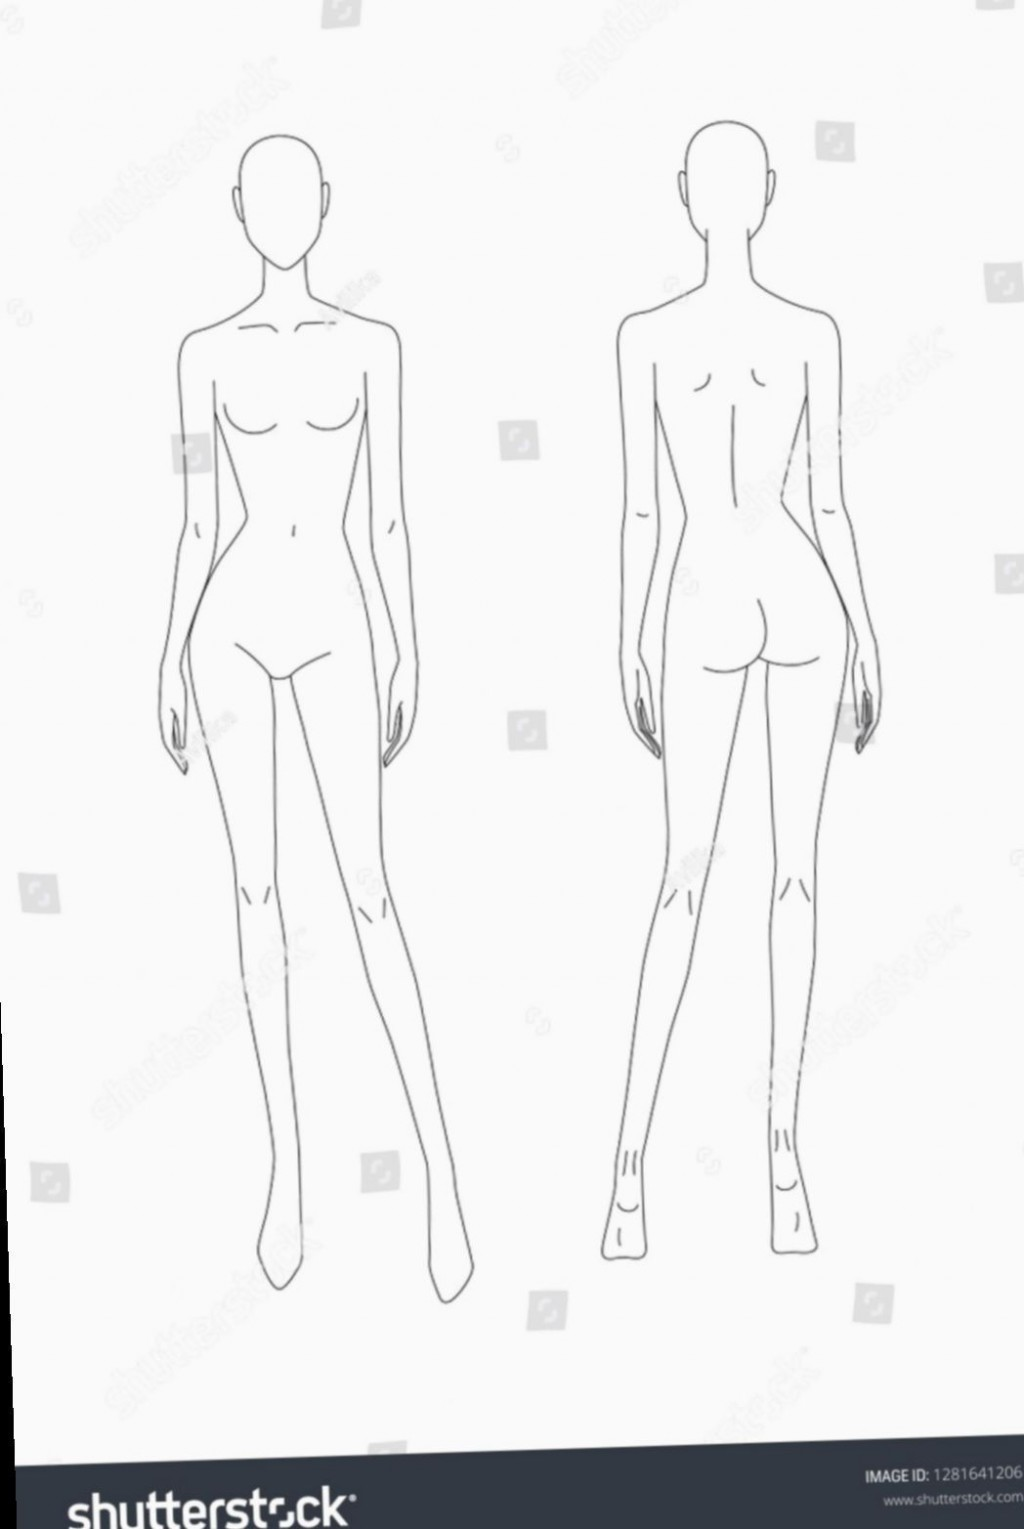 003 Shocking Body Template For Fashion Design Highest Quality  Female Male HumanLarge